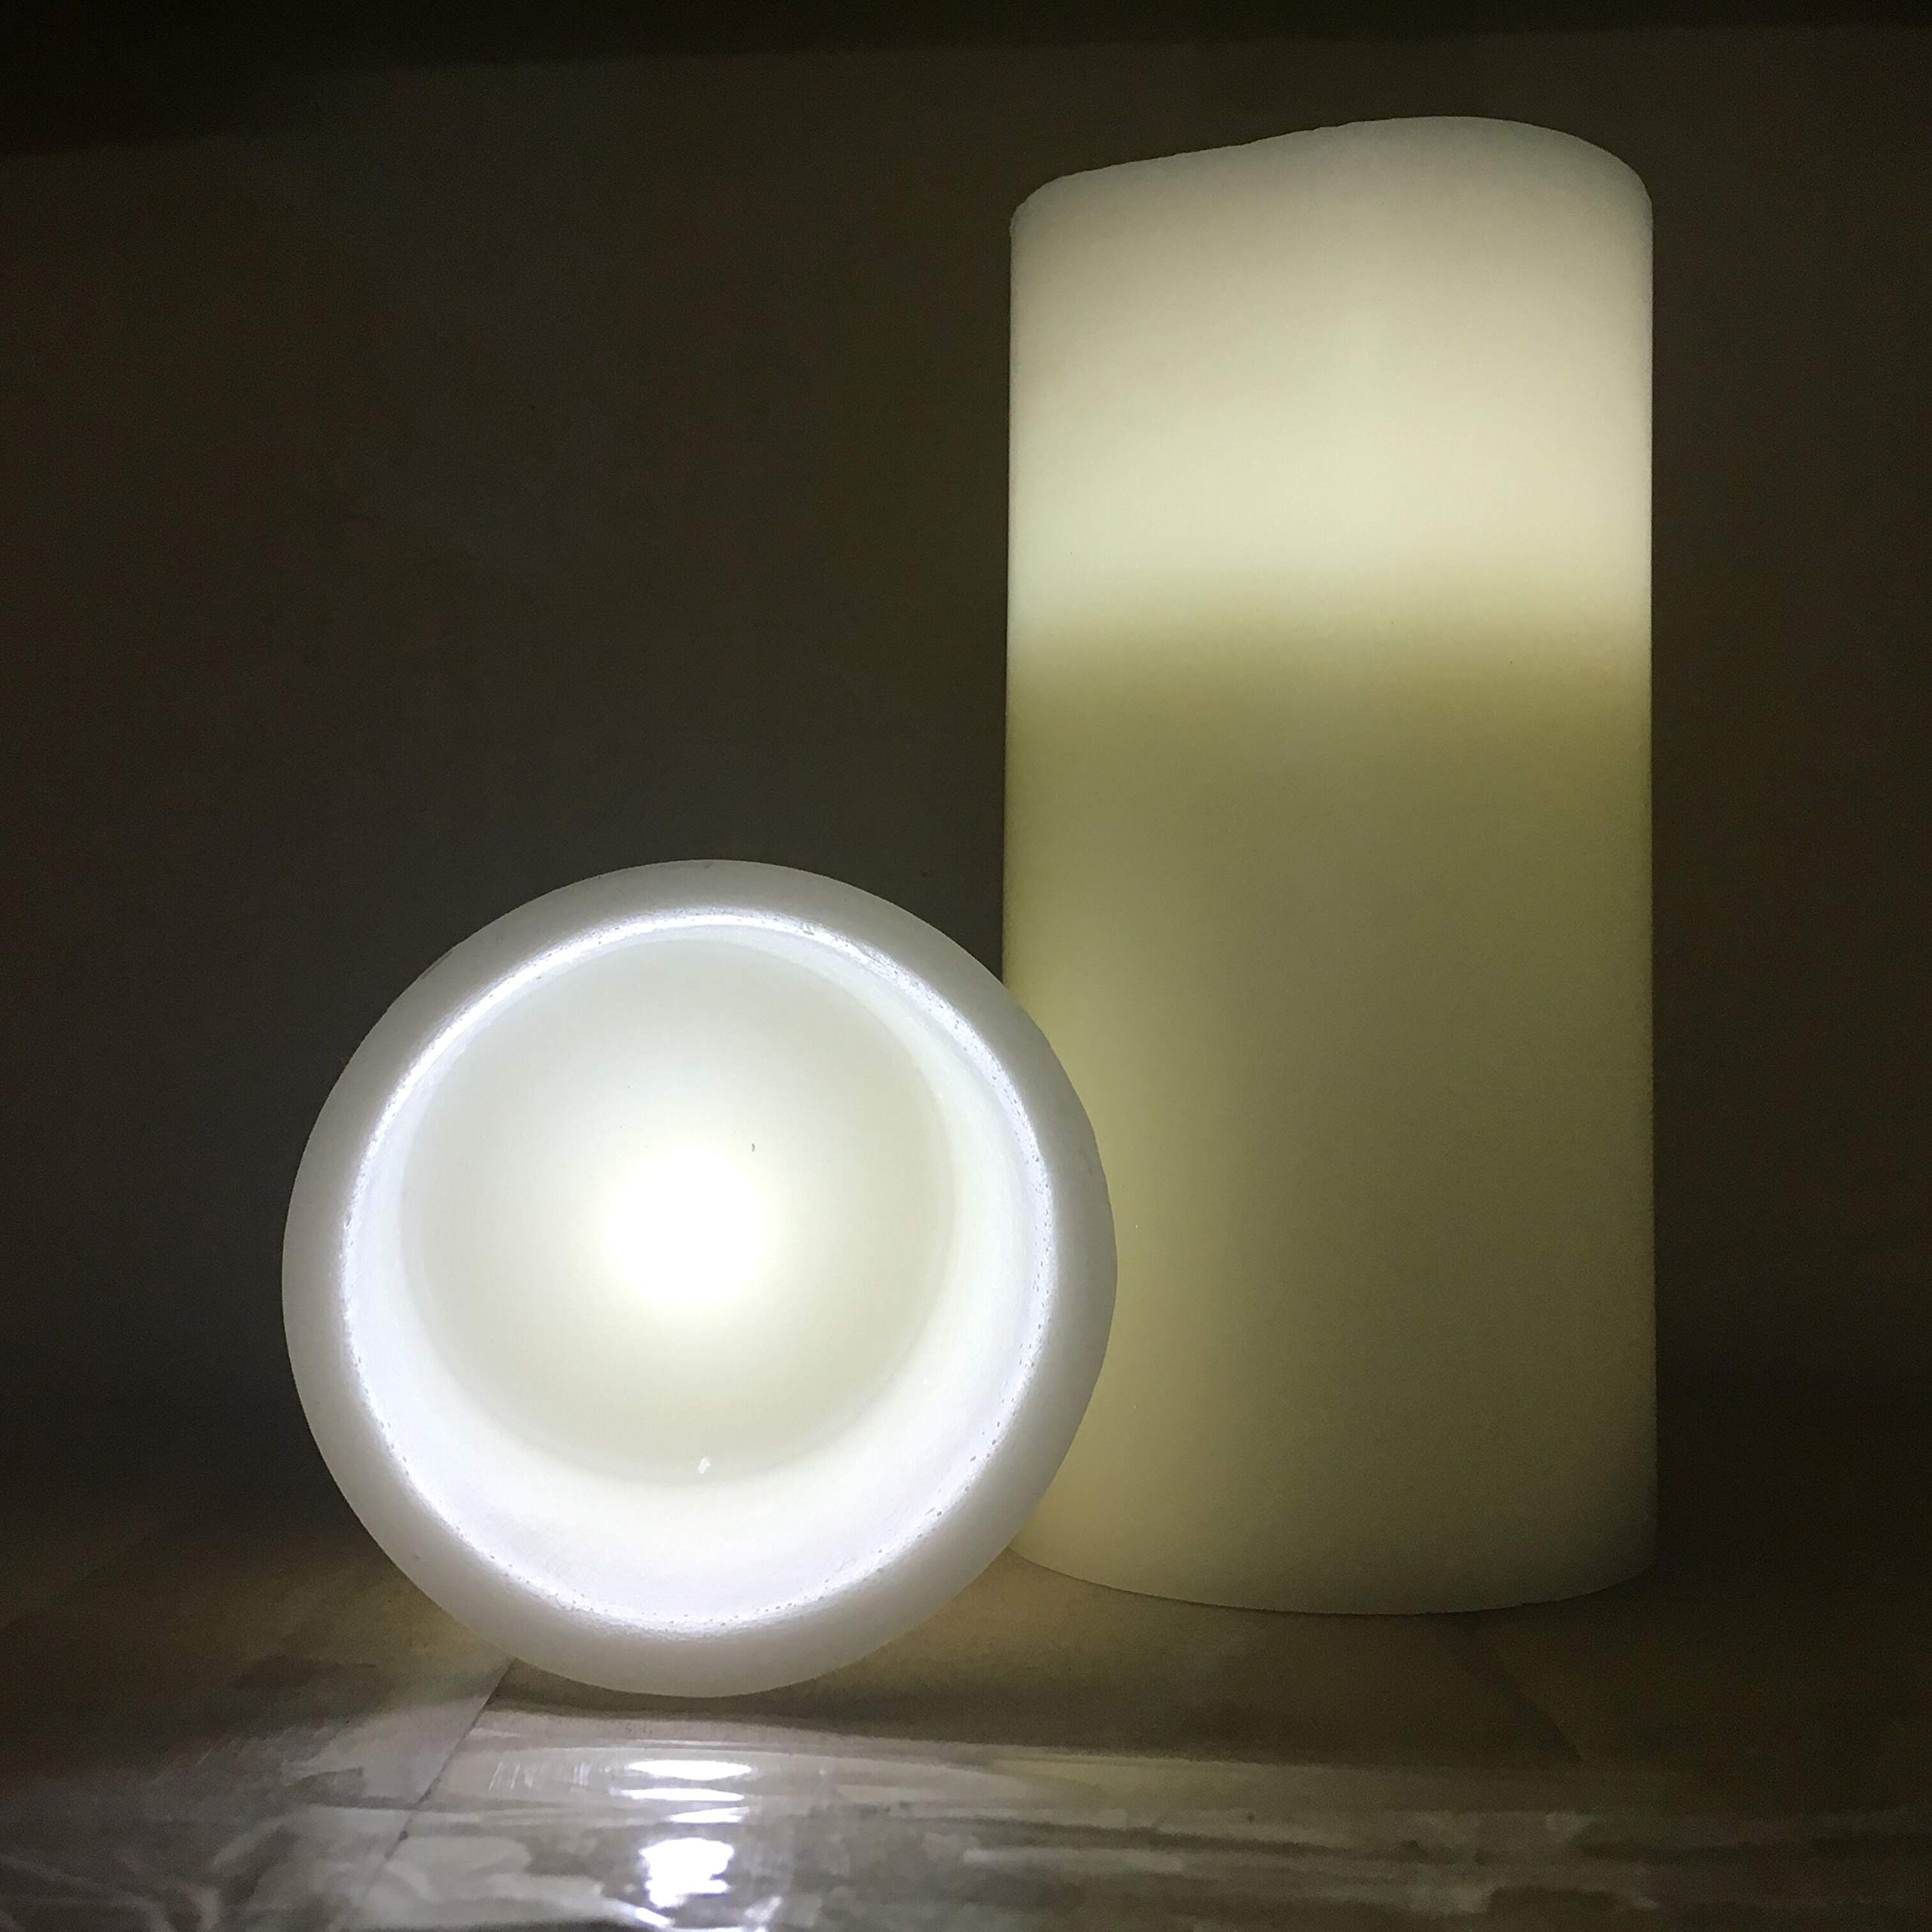 Outdoor Flameless Pillar Candles Pair 6'', Aimetech Real Wax Battery Operated Flickering LED Candle Light, Warm White Light by Aimetech (Image #2)